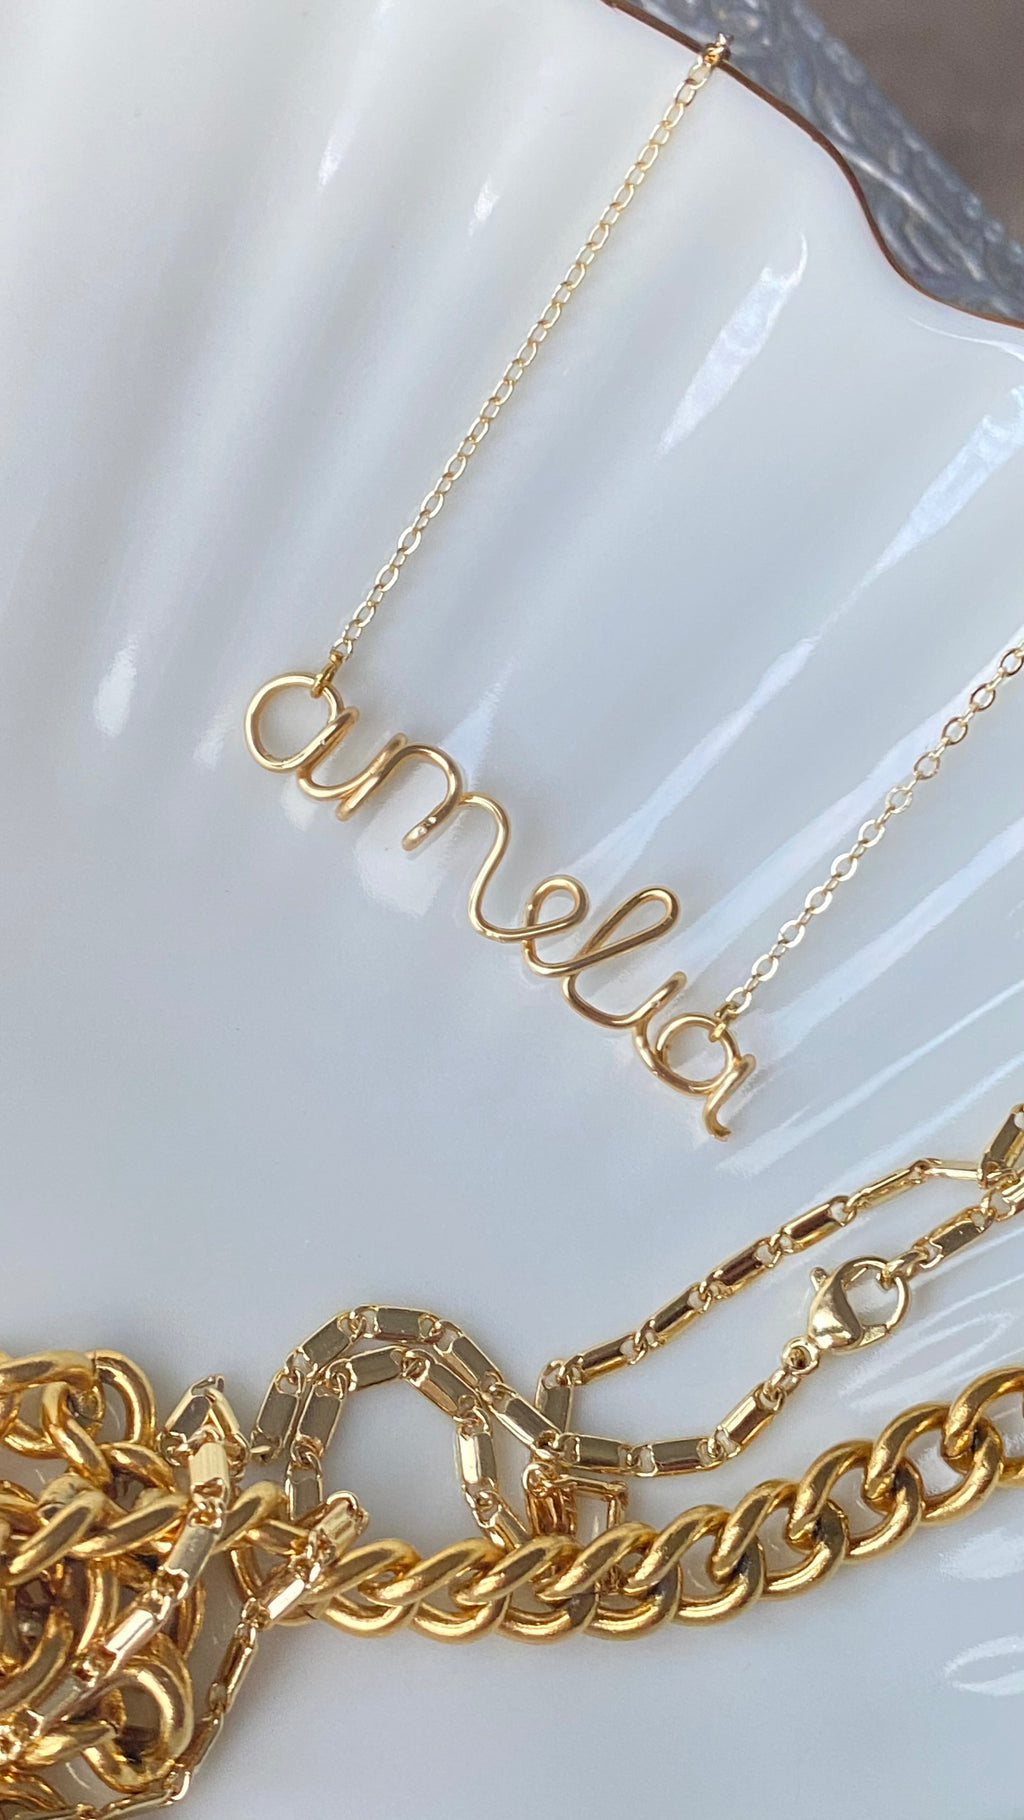 Personalised handmade necklaces